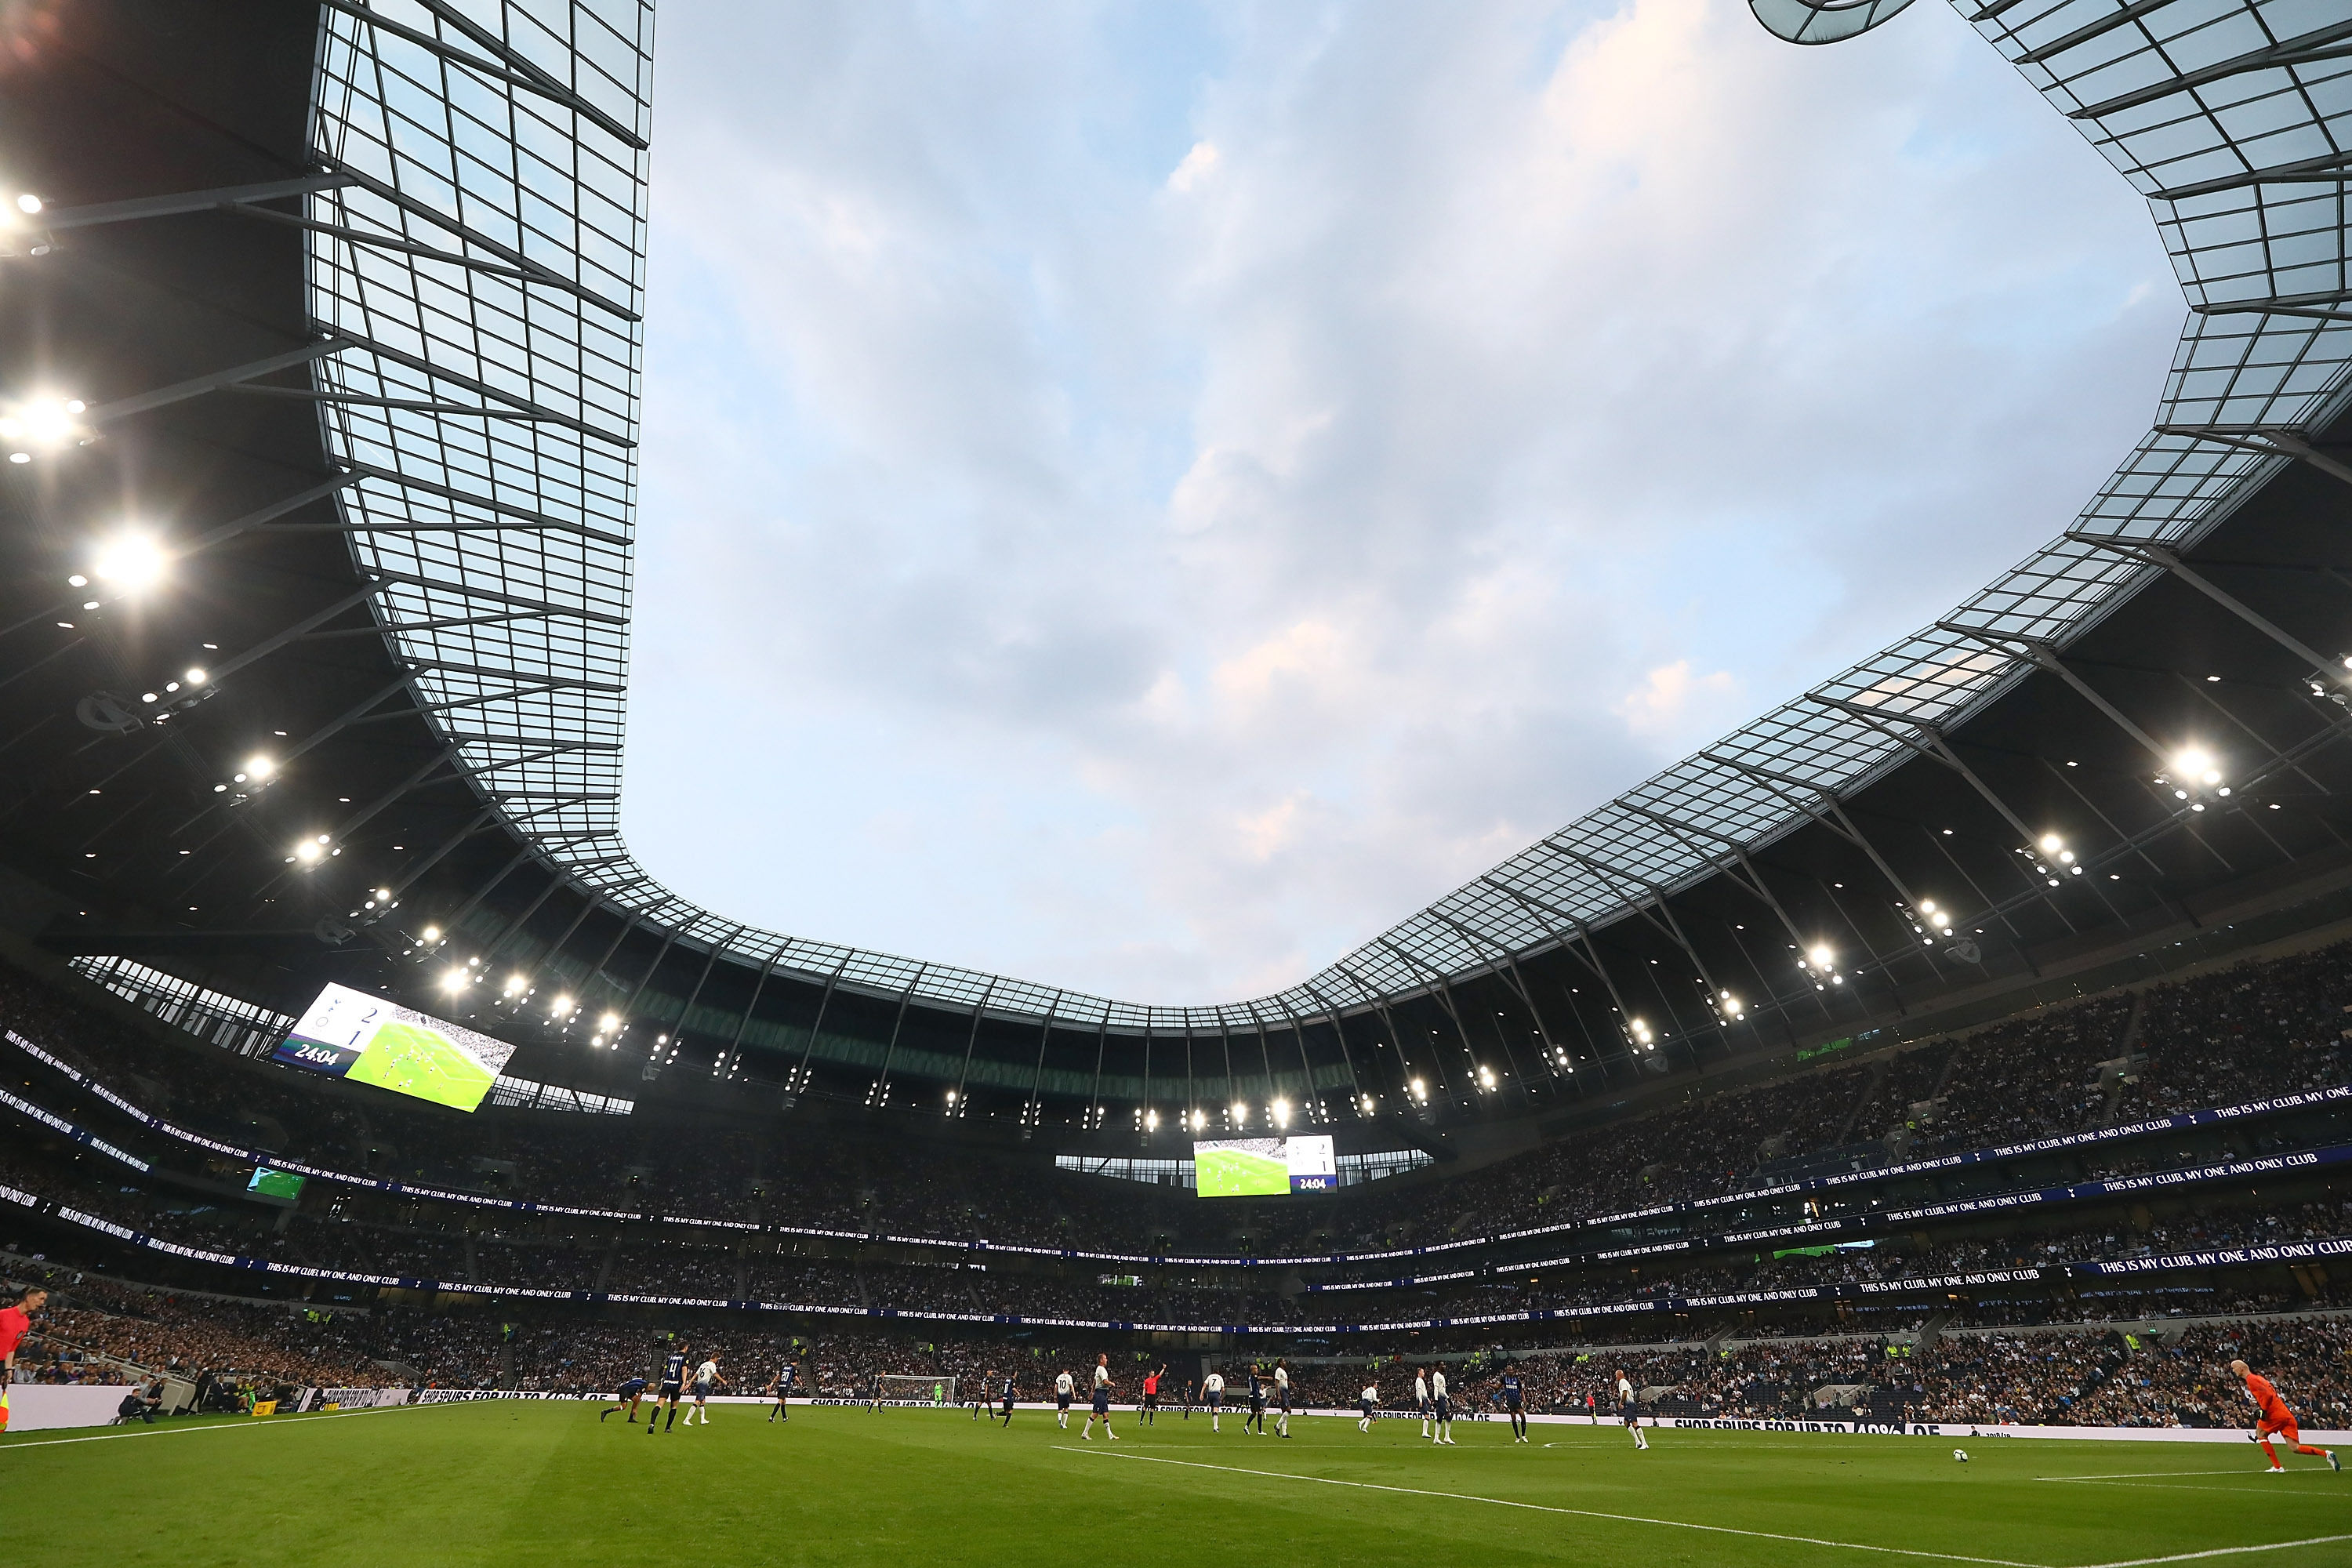 Show for Inter Forever at the new Tottenham Hotspur Stadium